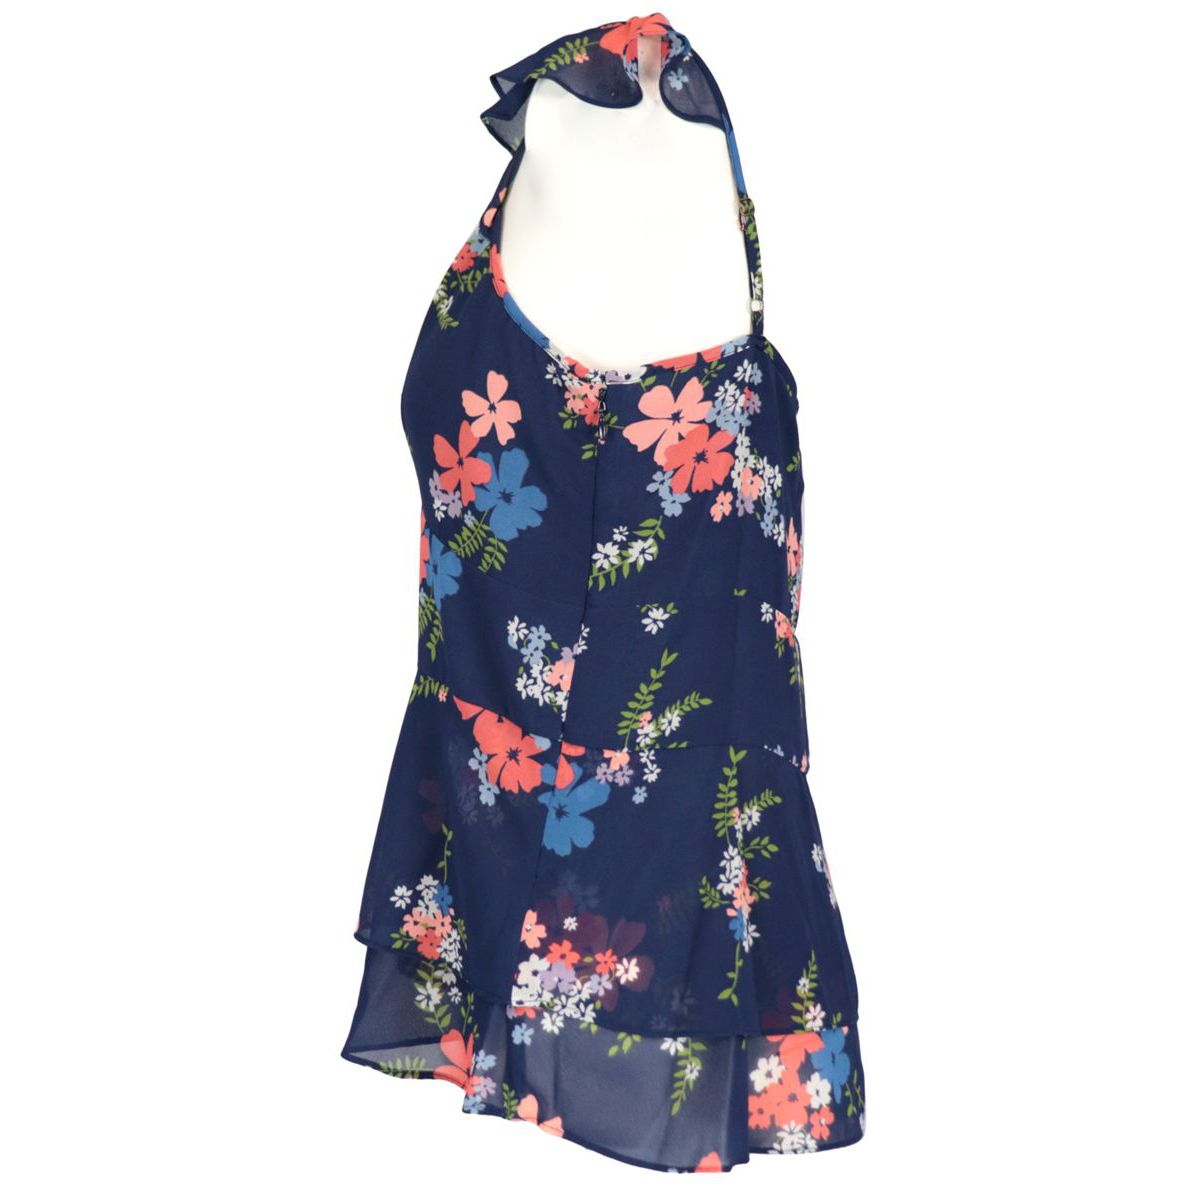 Top with floral print and thin straps with ruffles Coral Michael Kors